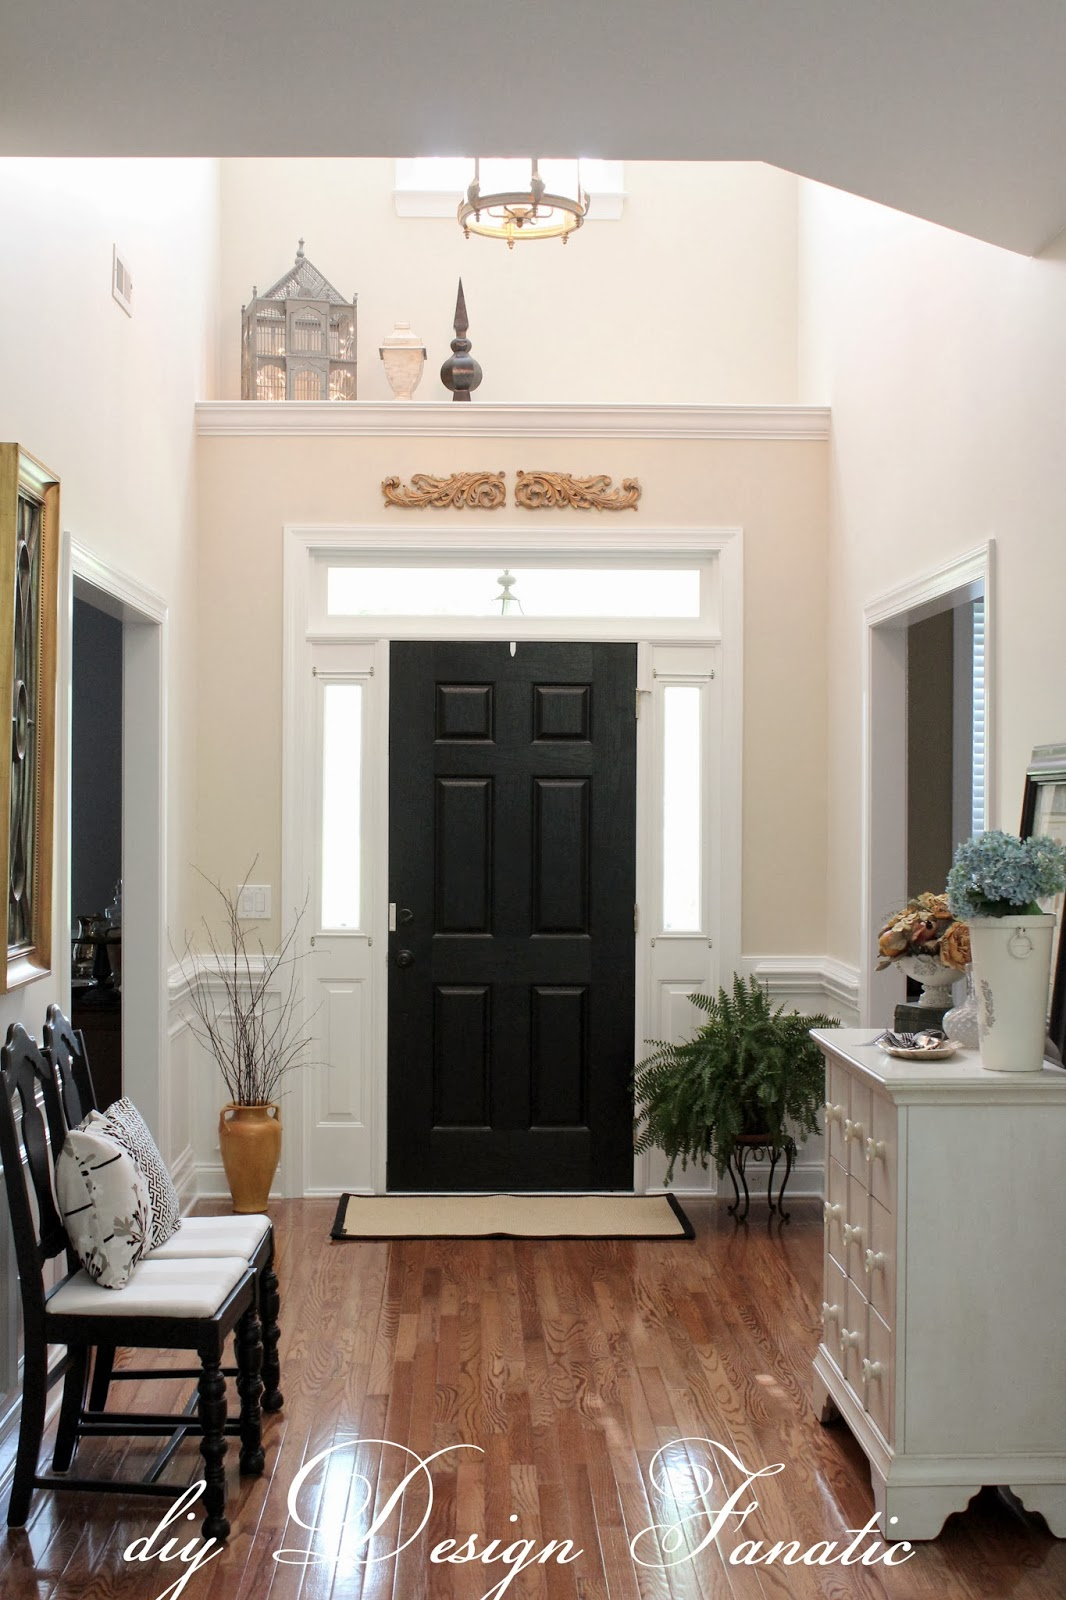 Foyer Front Door : From my front porch to yours how i found style sundays